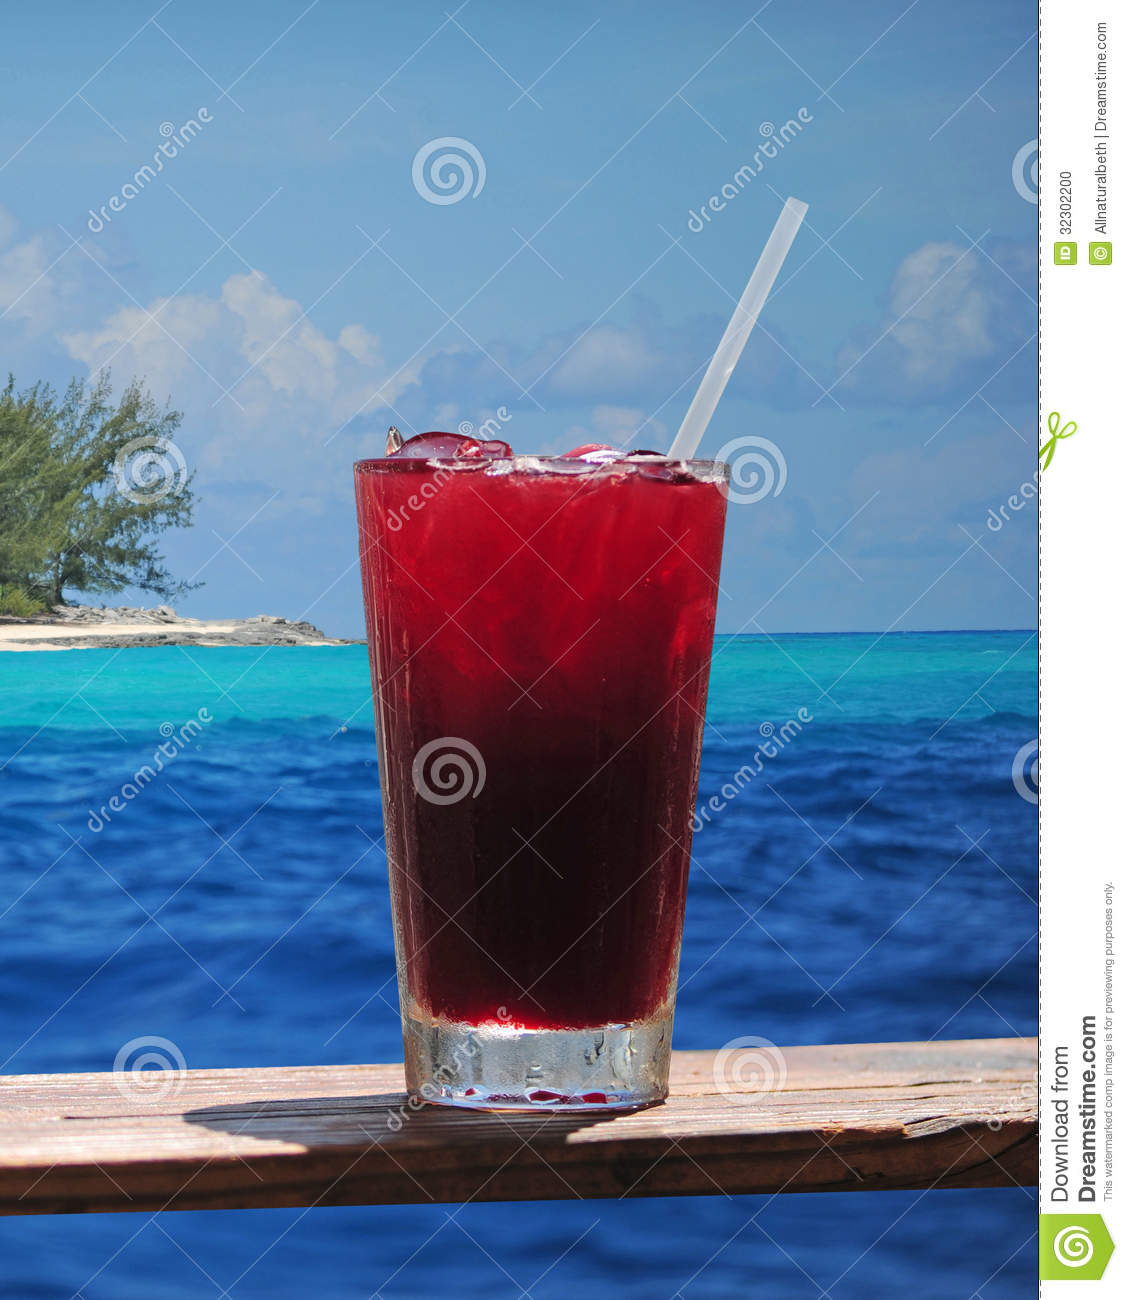 8 Tropical Island Rum Cocktails: Rum Punch Or Fruity Drink In A Tropical Paradise Stock